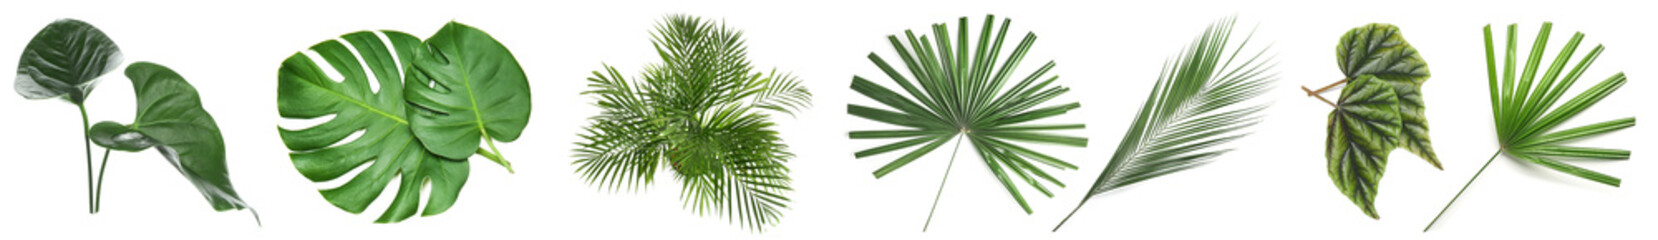 Poster Plant Set of green tropical leaves on white background